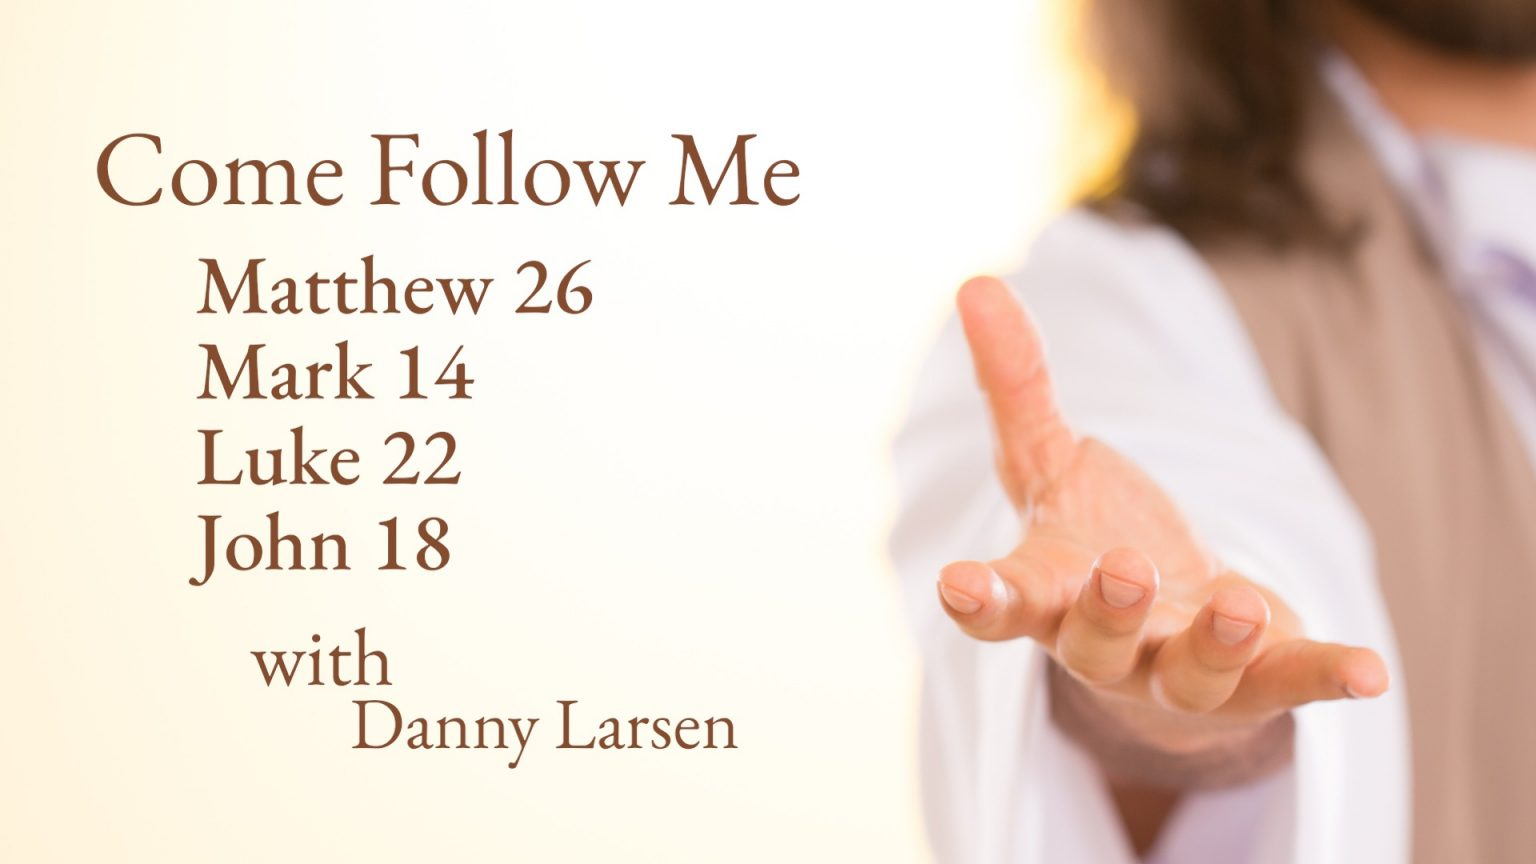 Matthew 26; Mark 14; Luke 22; John 18 – Come Follow Me